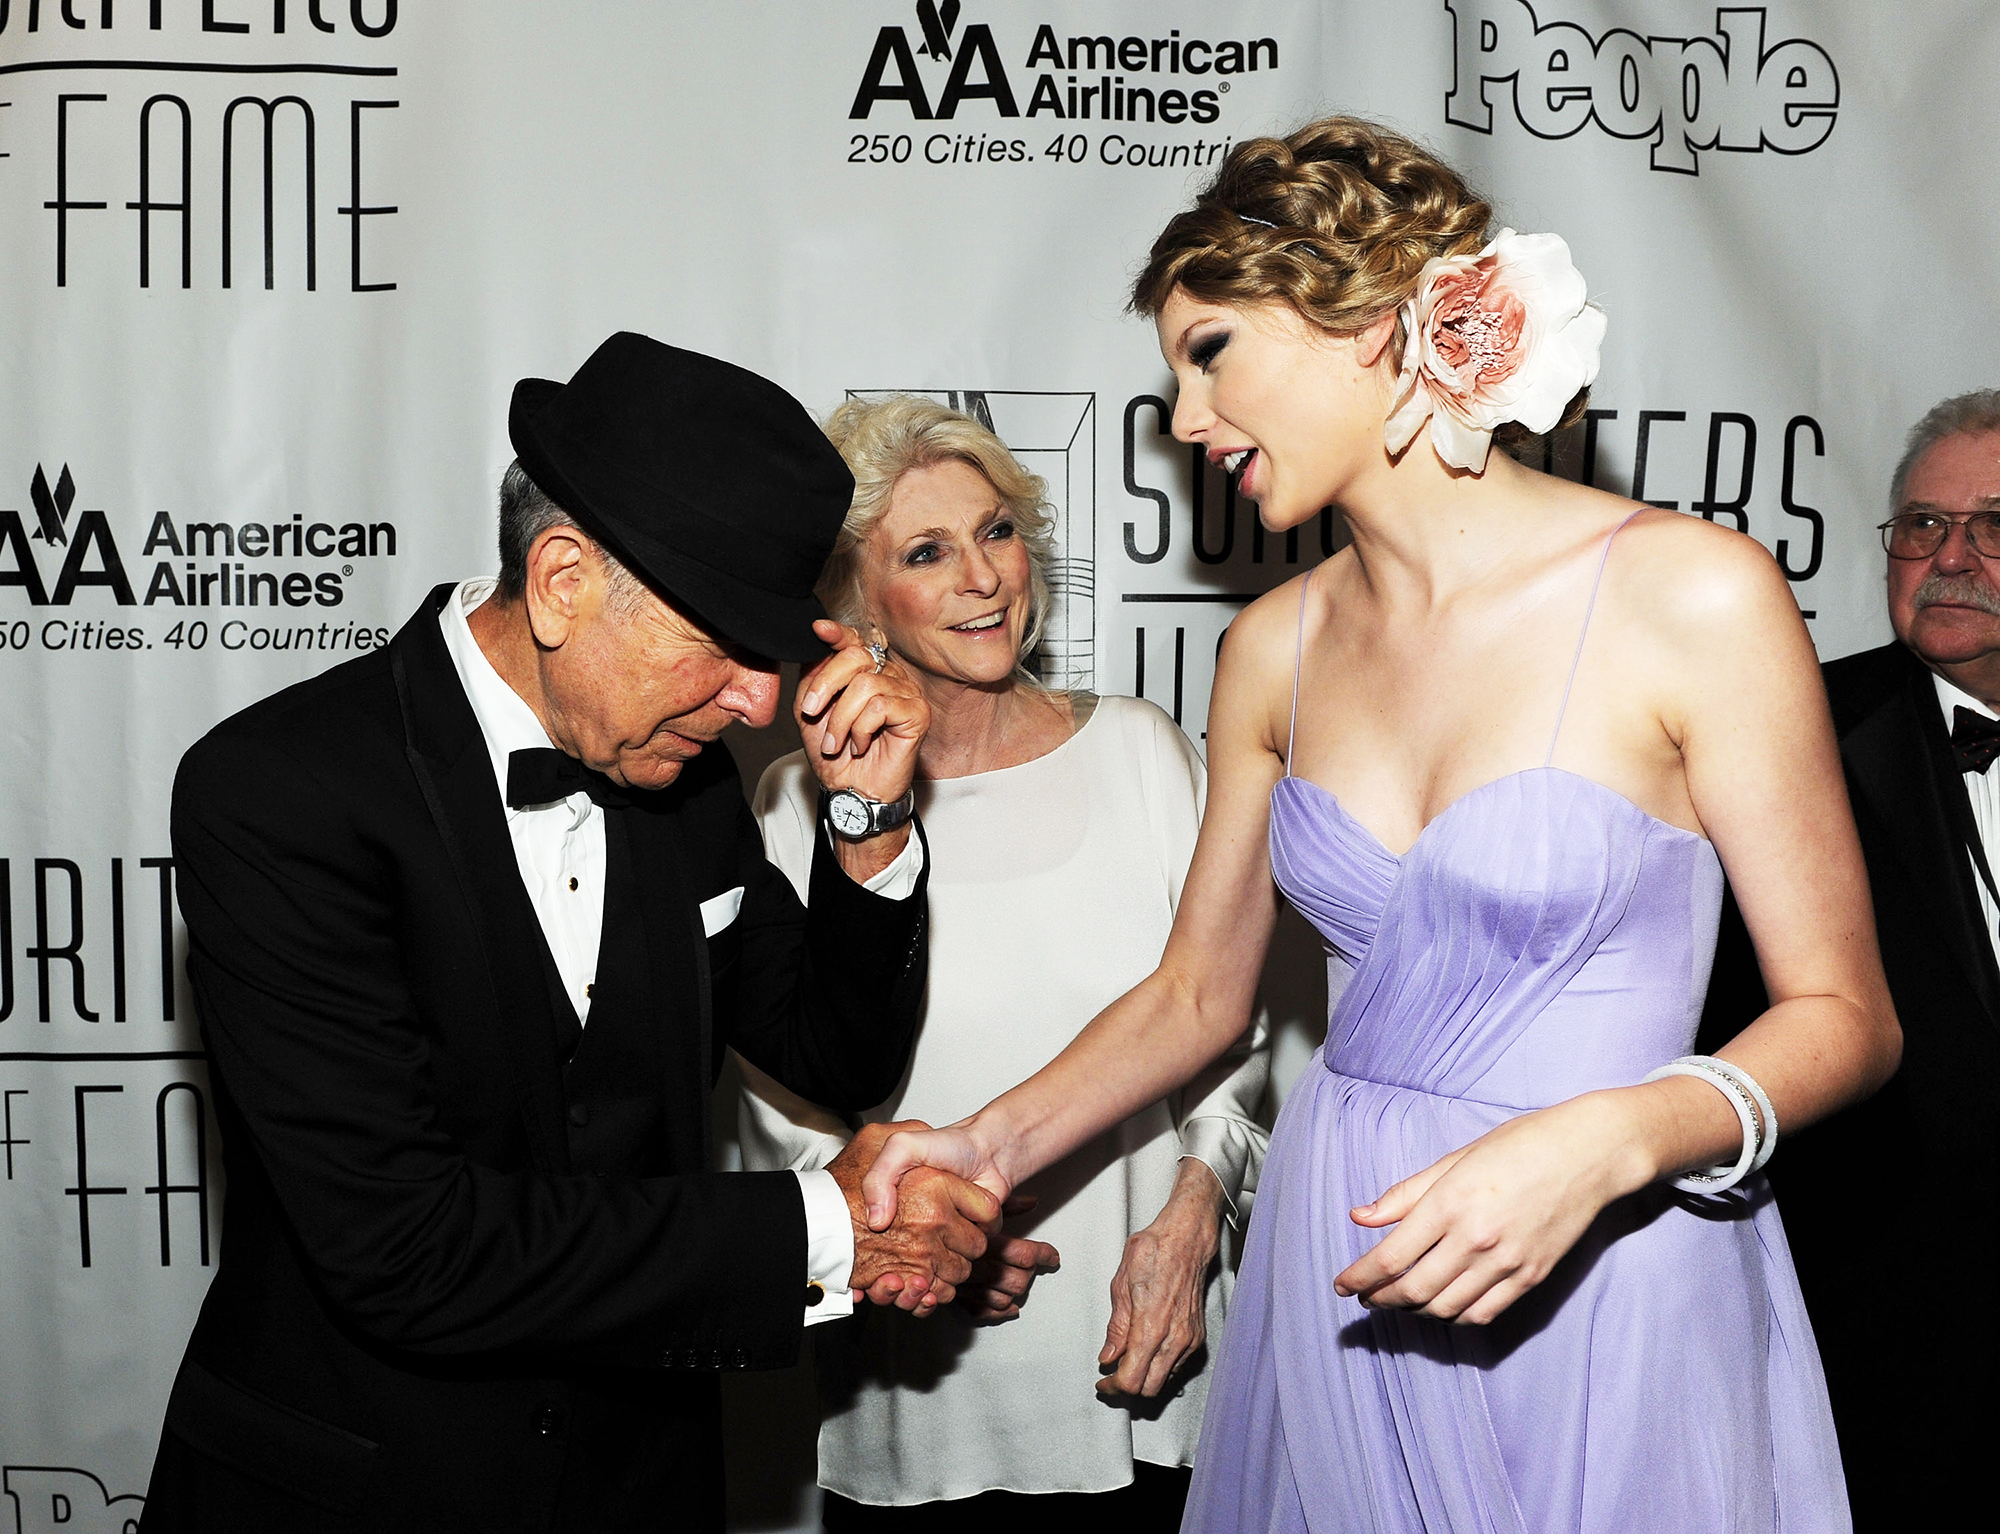 From left: Leonard Cohen, Judy Collins and Taylor Swift at the 41st Annual Songwriters Hall of Fame Ceremony on June 17, 2010 in New York City.